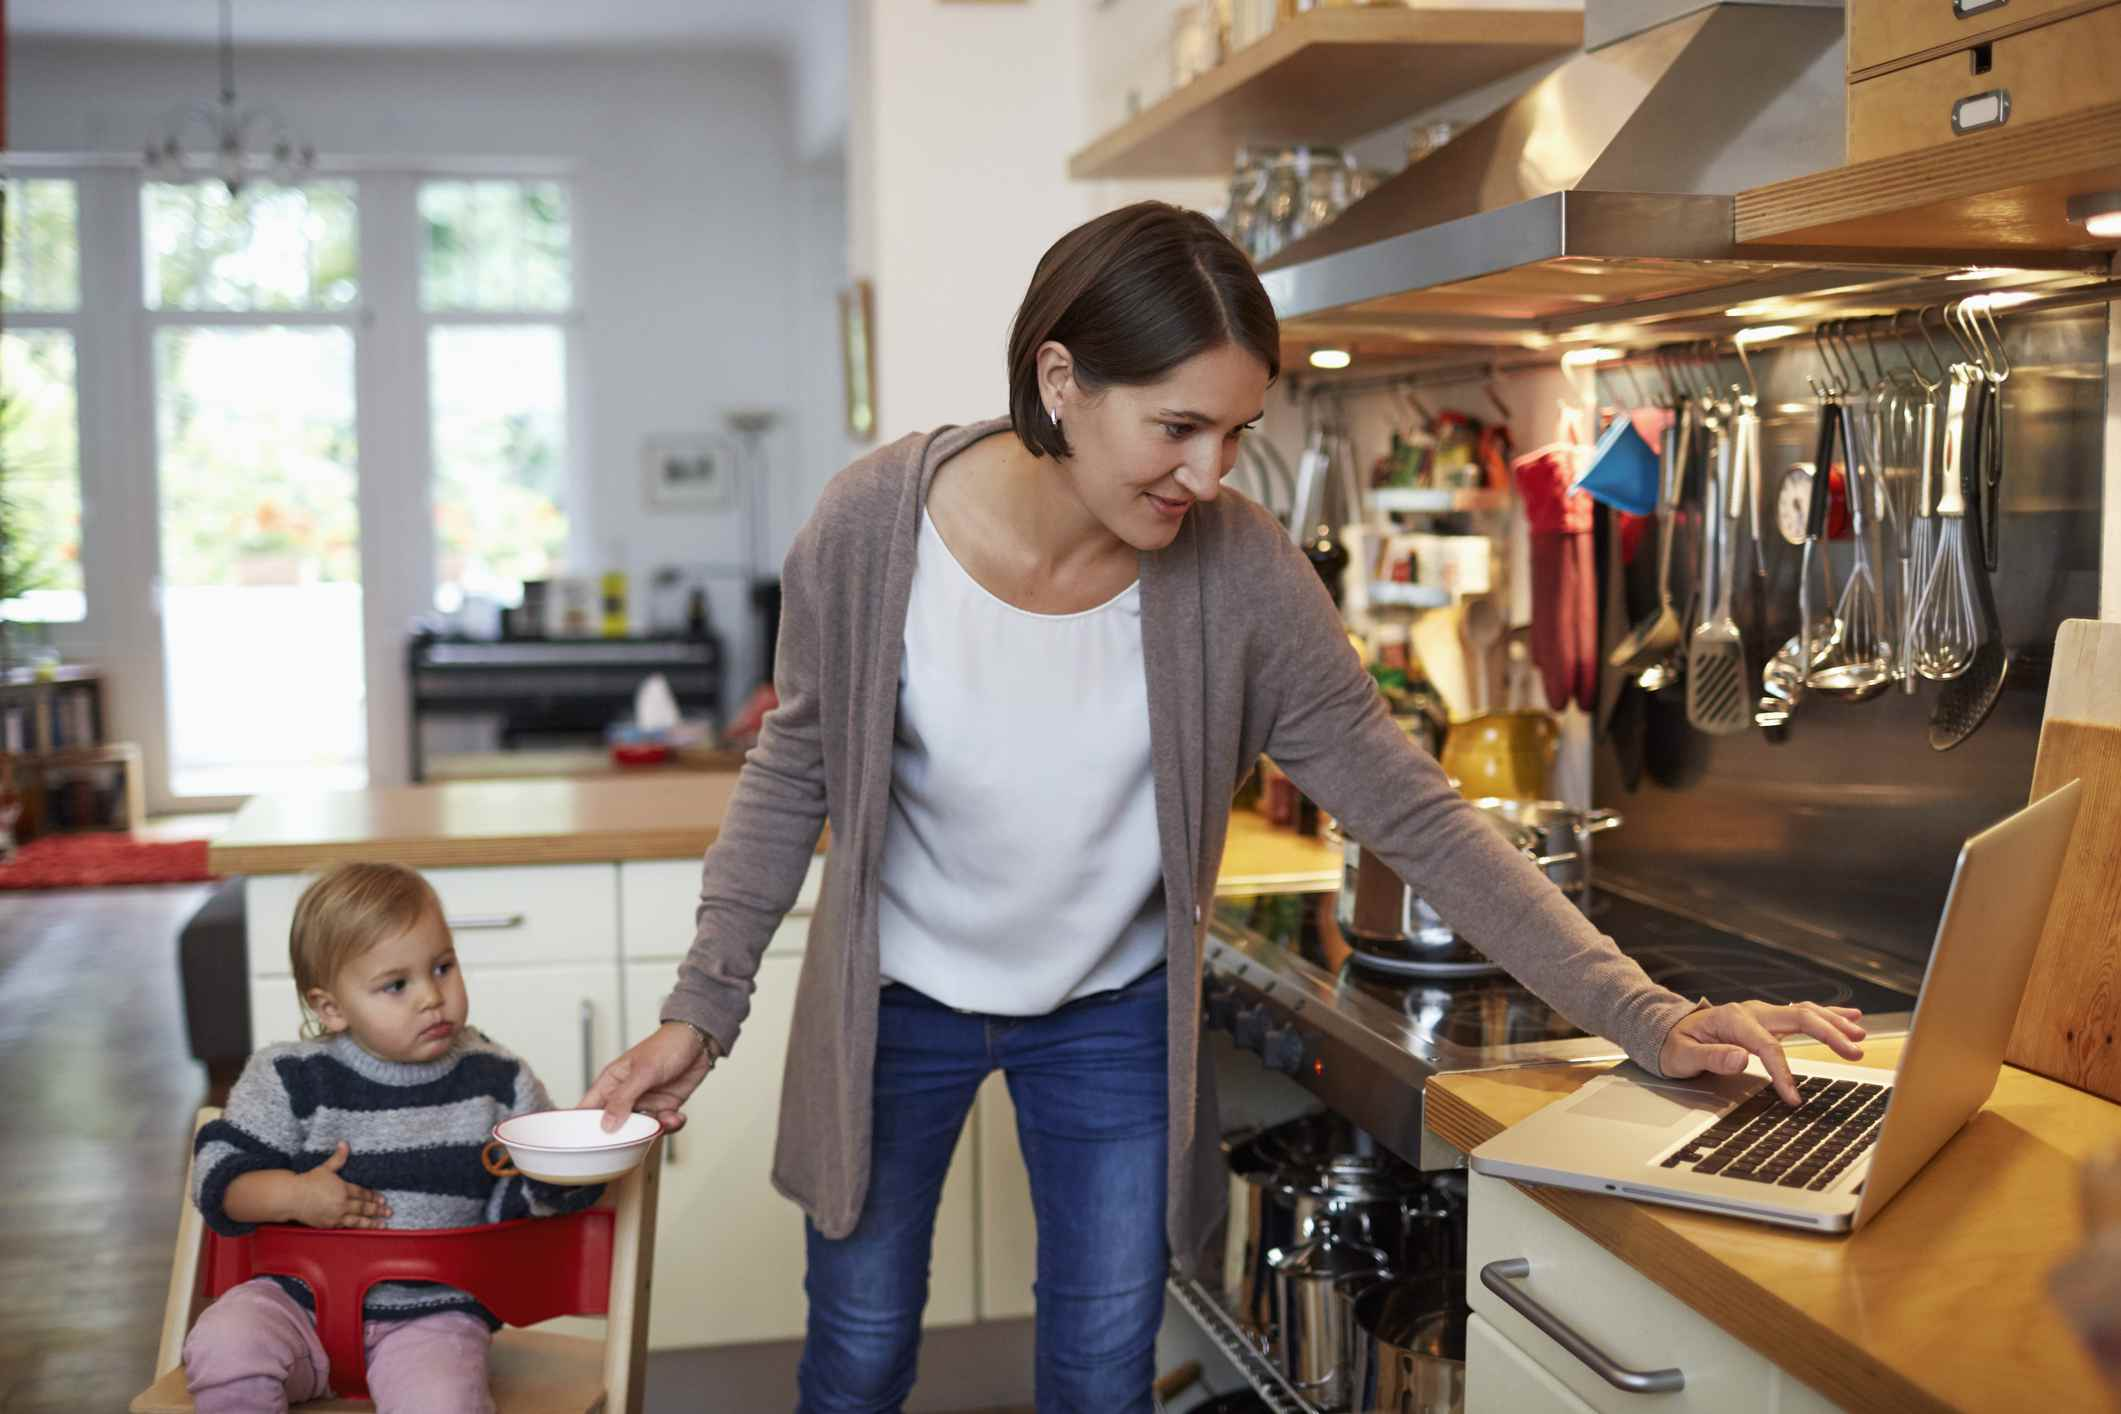 Mothers Returning to the Workforce Need to Consider IT Bootcamps